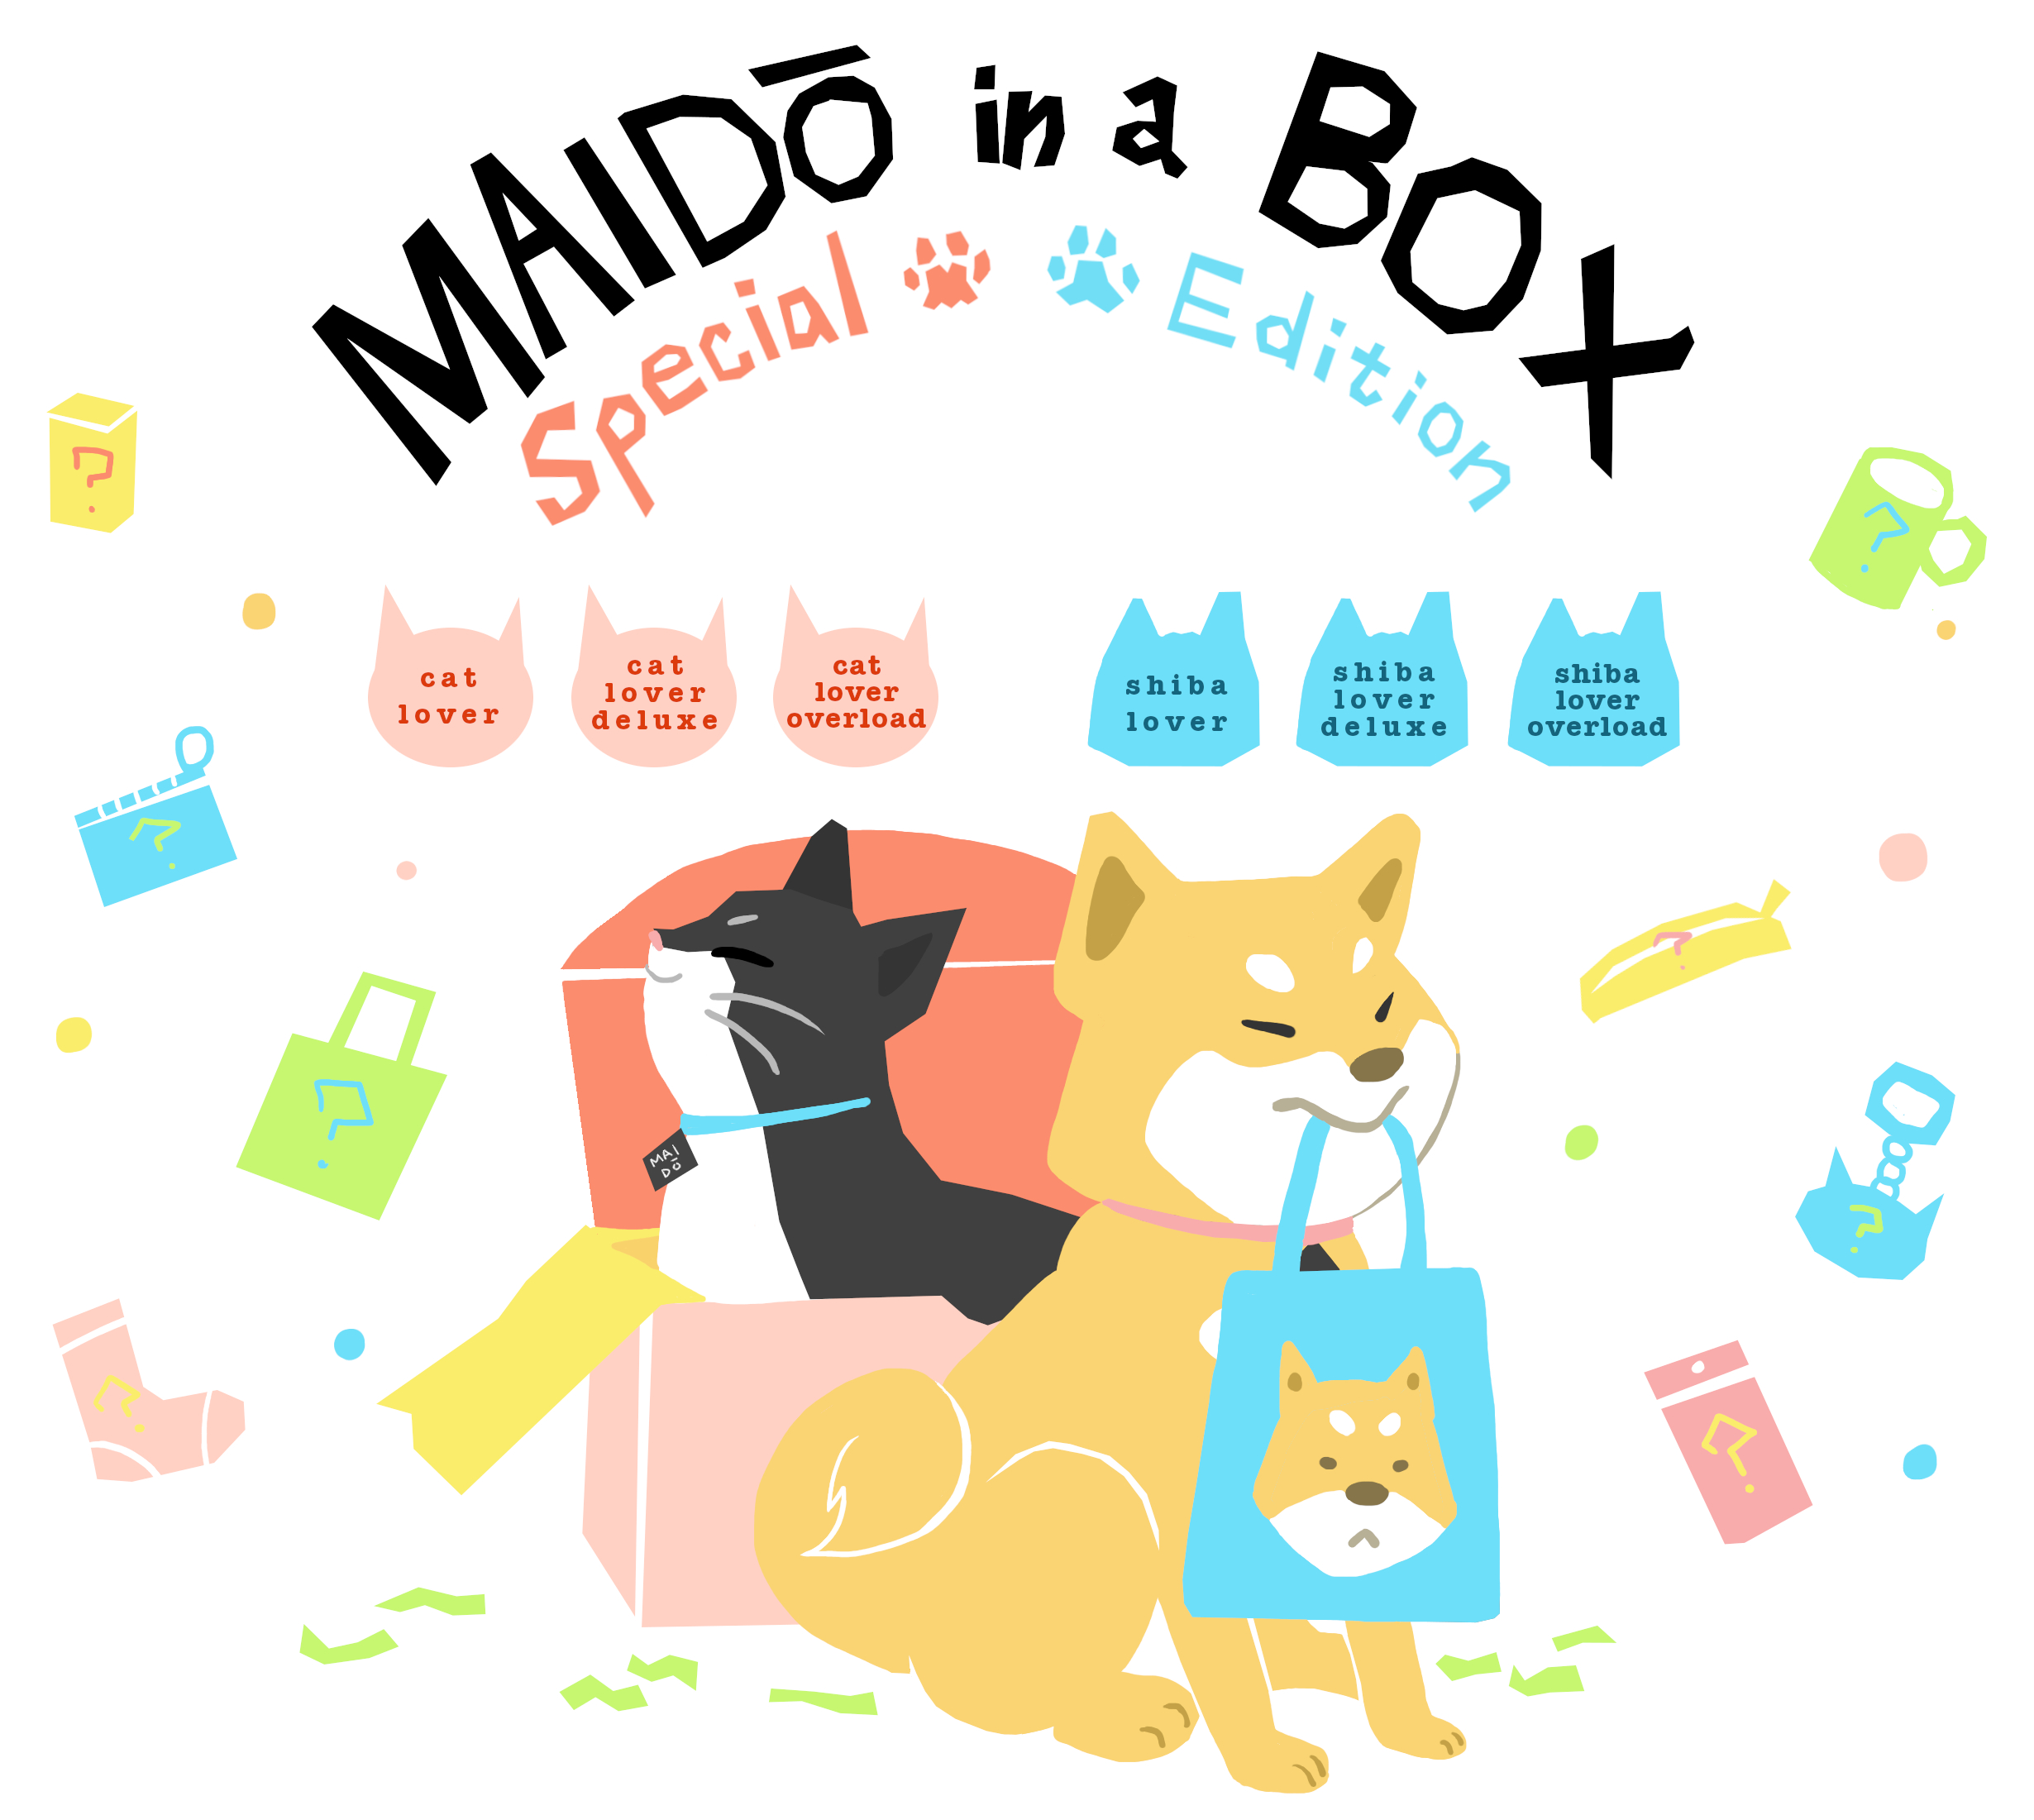 Link to an enlarged 3rd image of Shiba Lover Box - Maido in a Box Special Edition